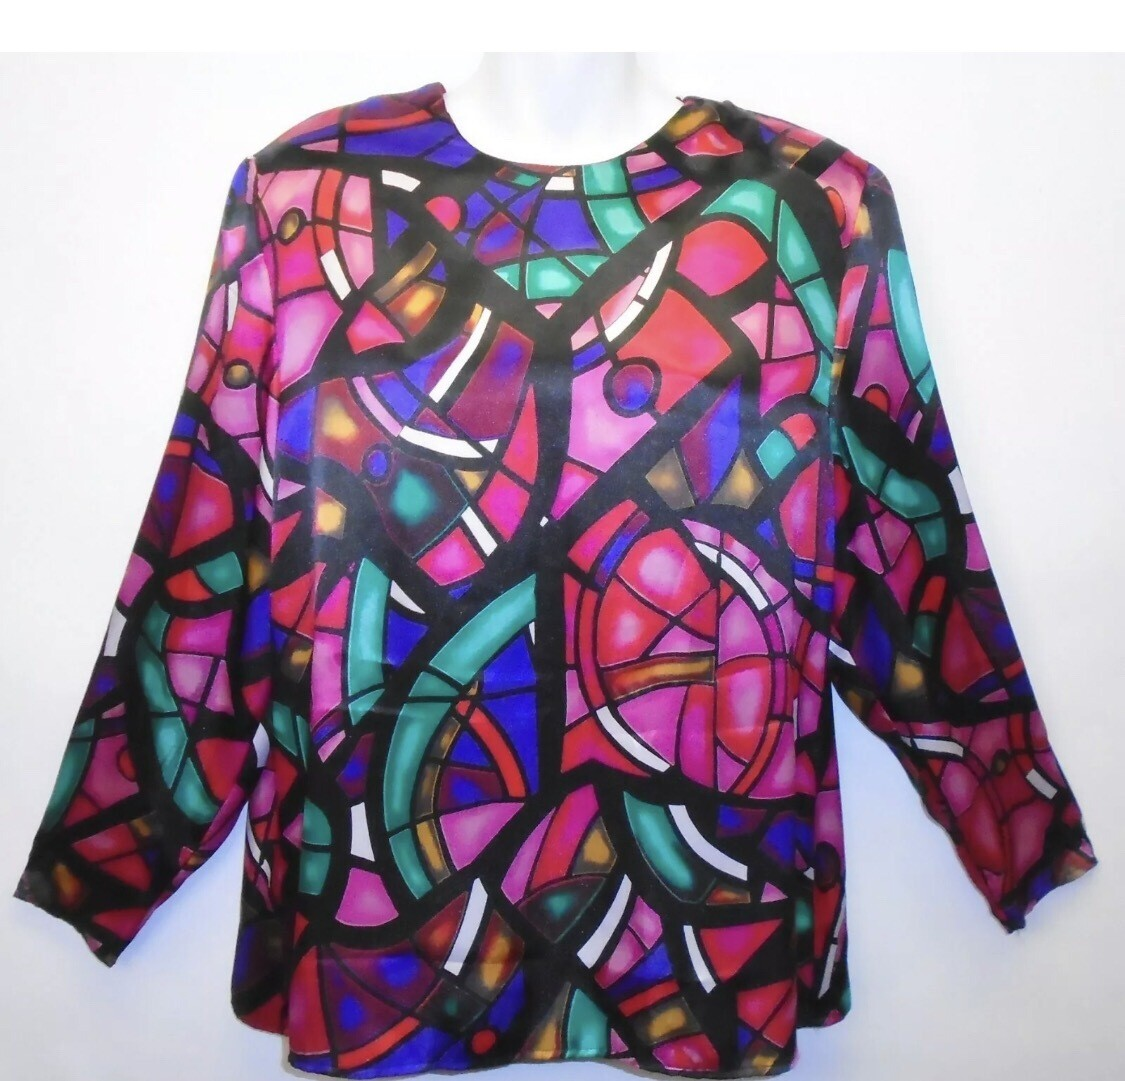 Stained Glass Window Blouse - M/L